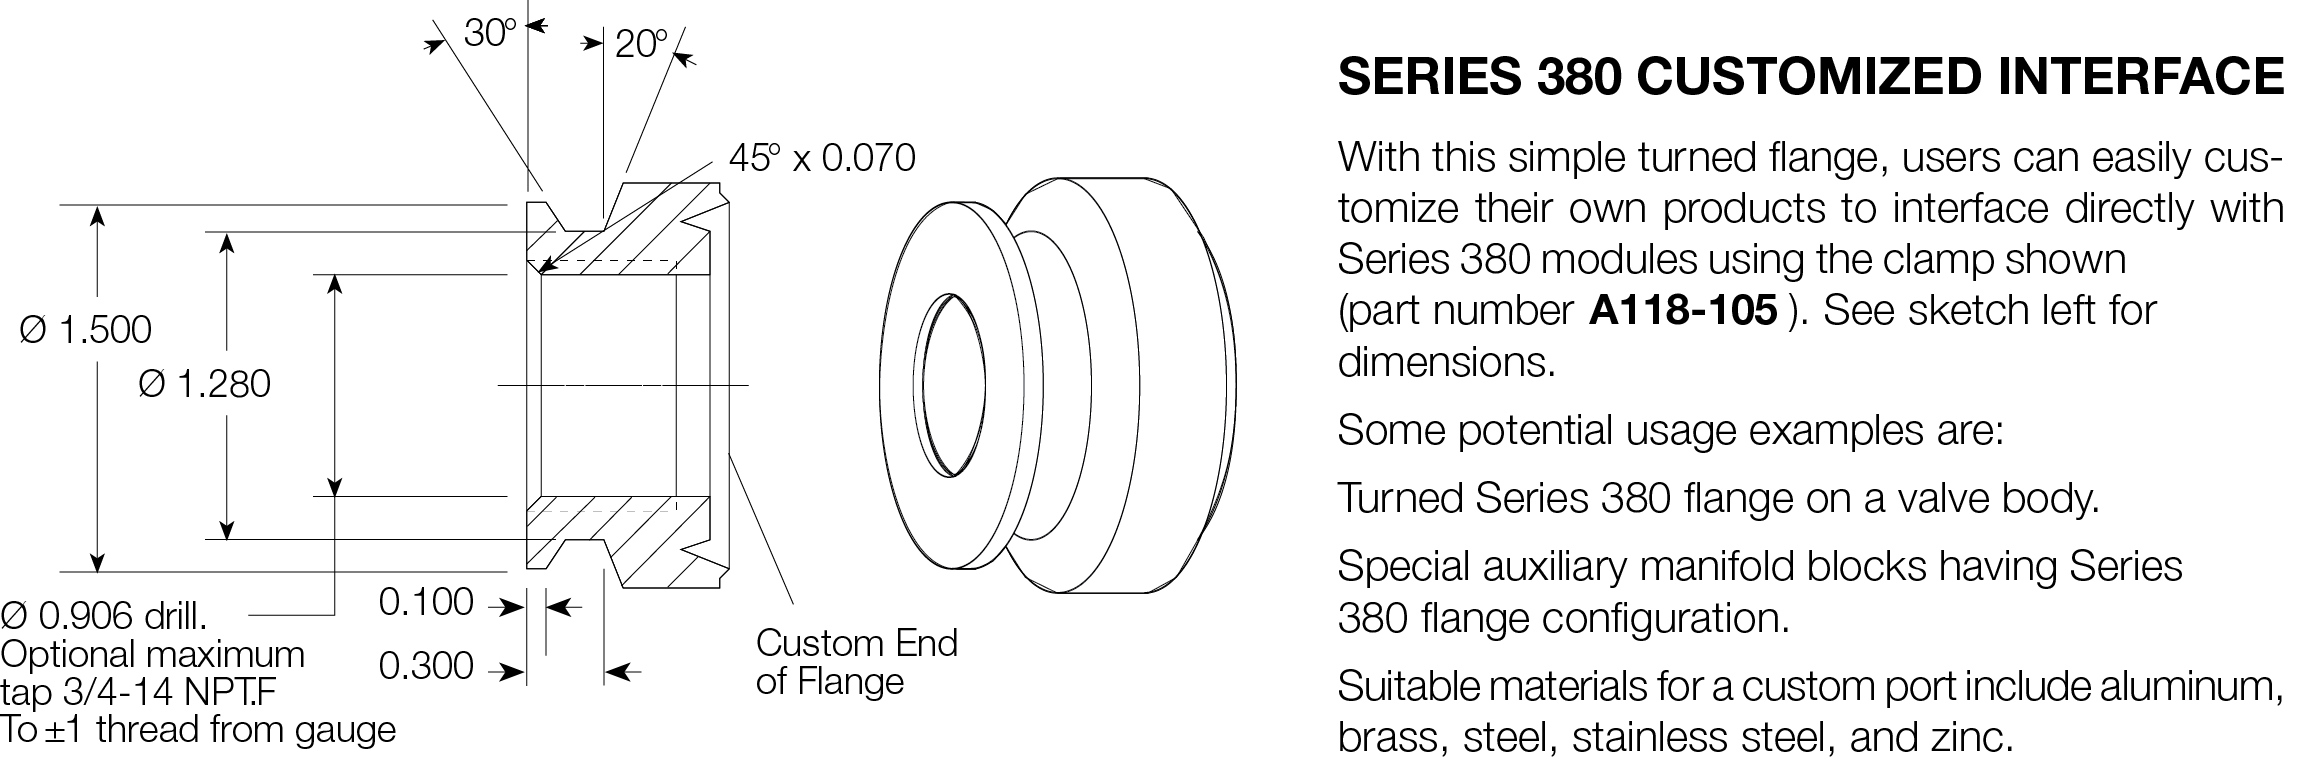 380 SERIES CONNECTOR DIMENSIONS